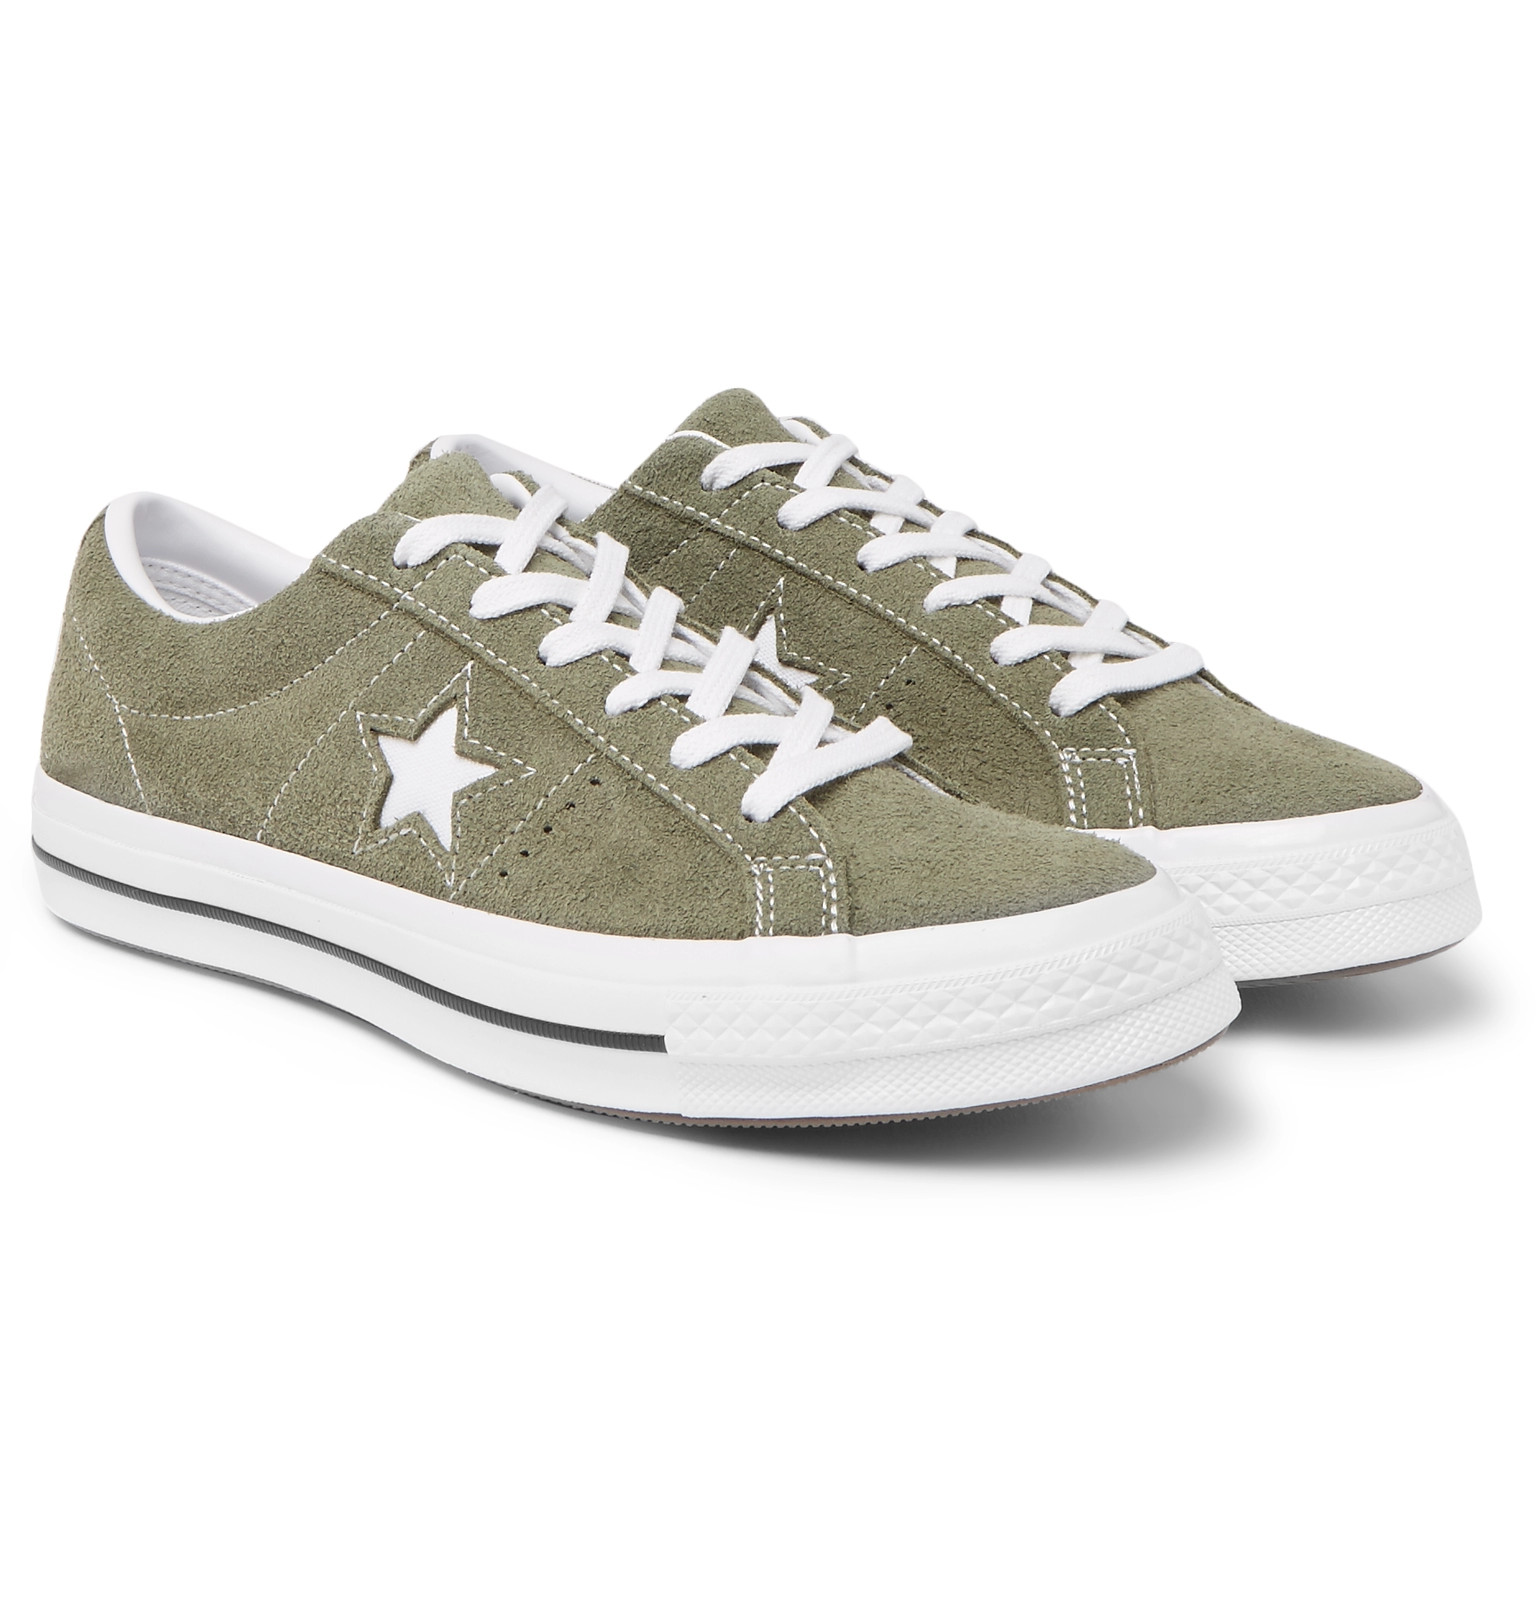 ef9896c7807 Converse - One Star OX Suede Sneakers